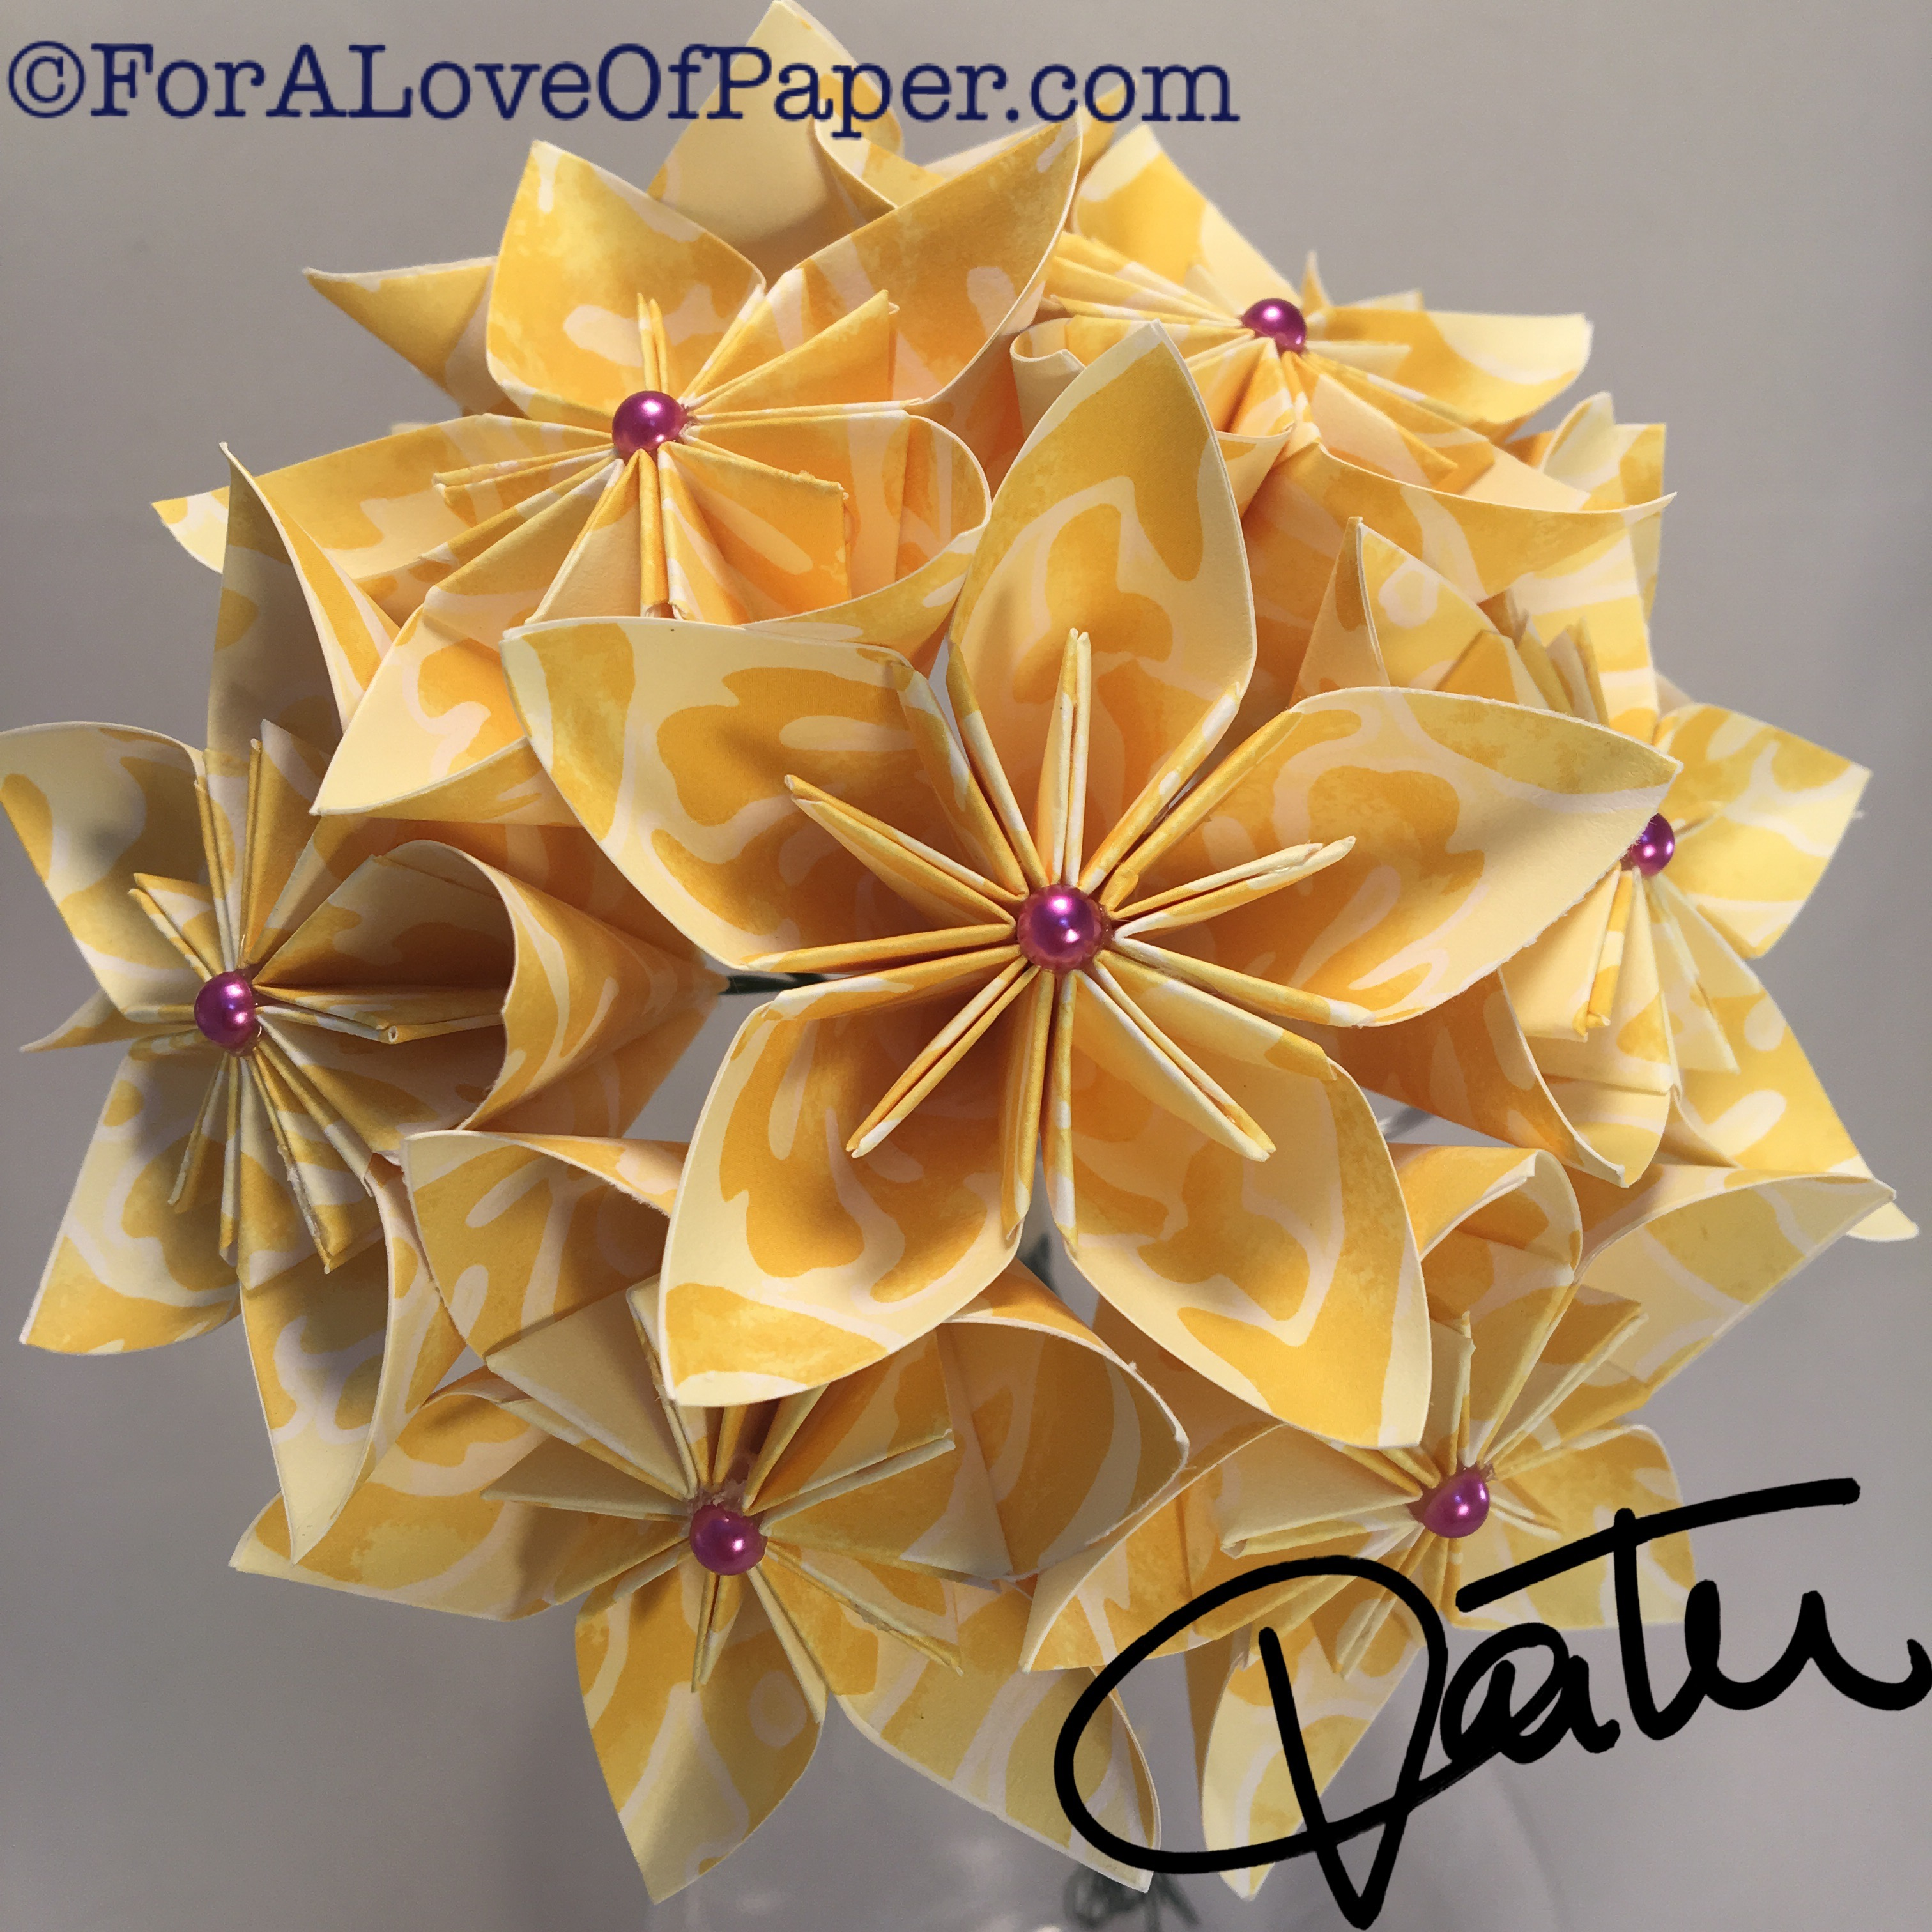 Smooth yellow paper flowers